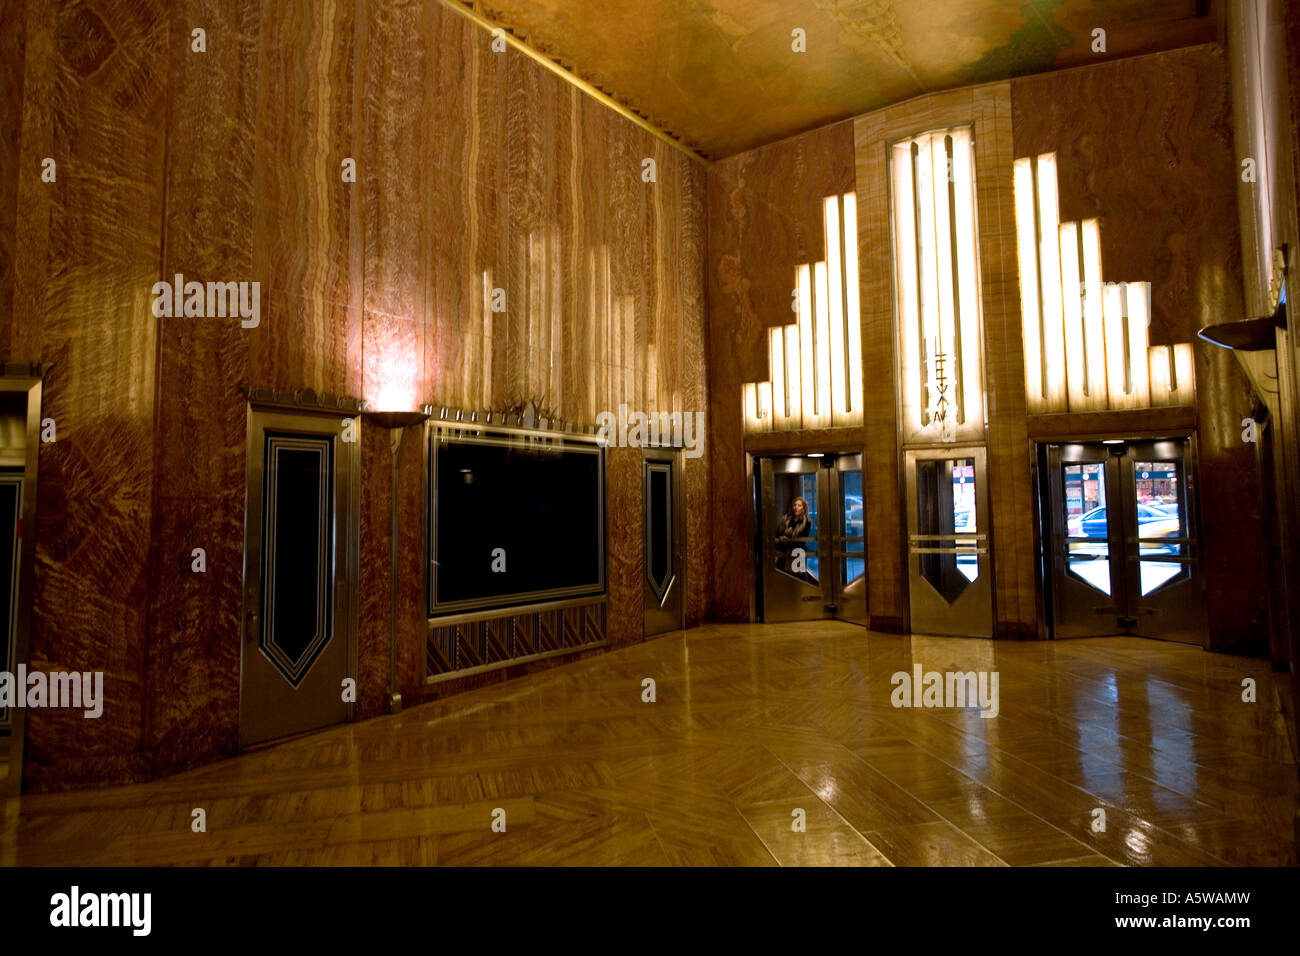 Interior lobby detail on the Chrysler Building in New York City USA 2007 - Stock Image